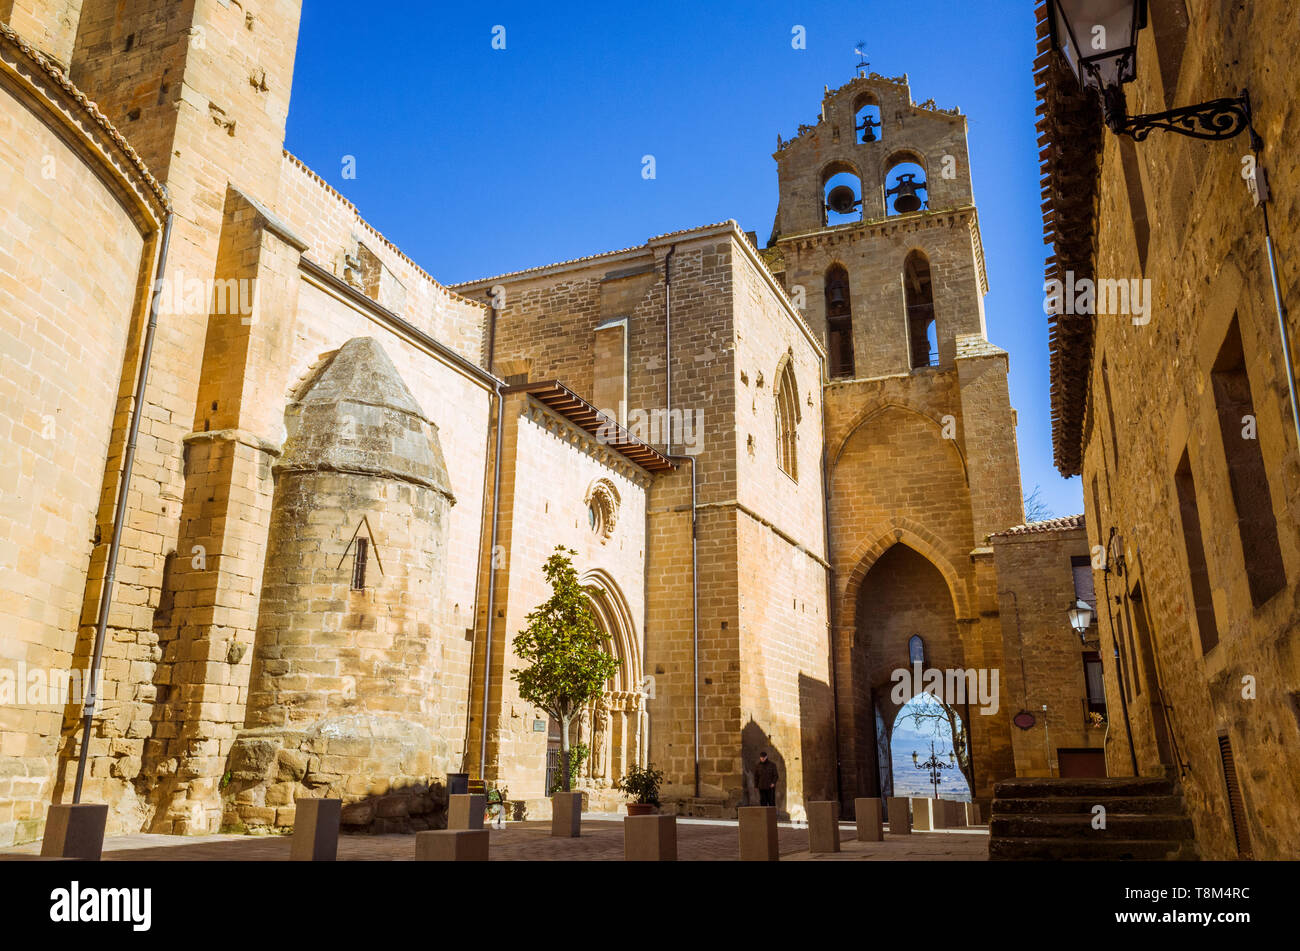 Laguardia, Álava province, Basque Country, Spain : Church of San Juan initially built in Romanesque style and completed in Gothic style. The bell gabl Stock Photo